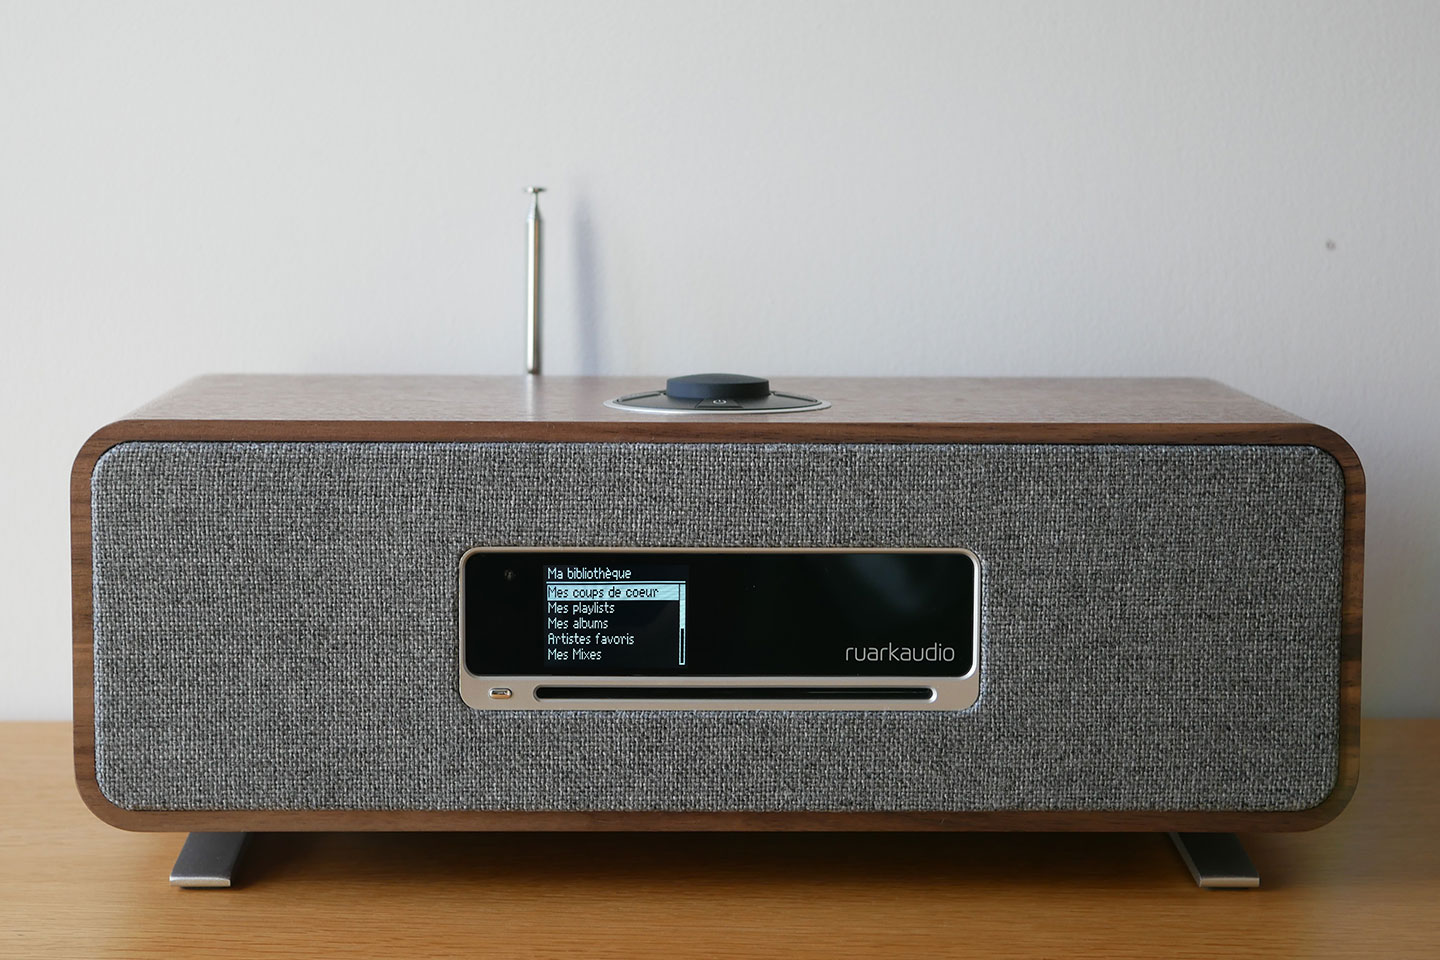 Test de la mini-chaine HiFi Ruark Audio R3 : Amazon, Deezer, Tidal, Spotify, lecteur CD, WiFi, radio Internet et DAB